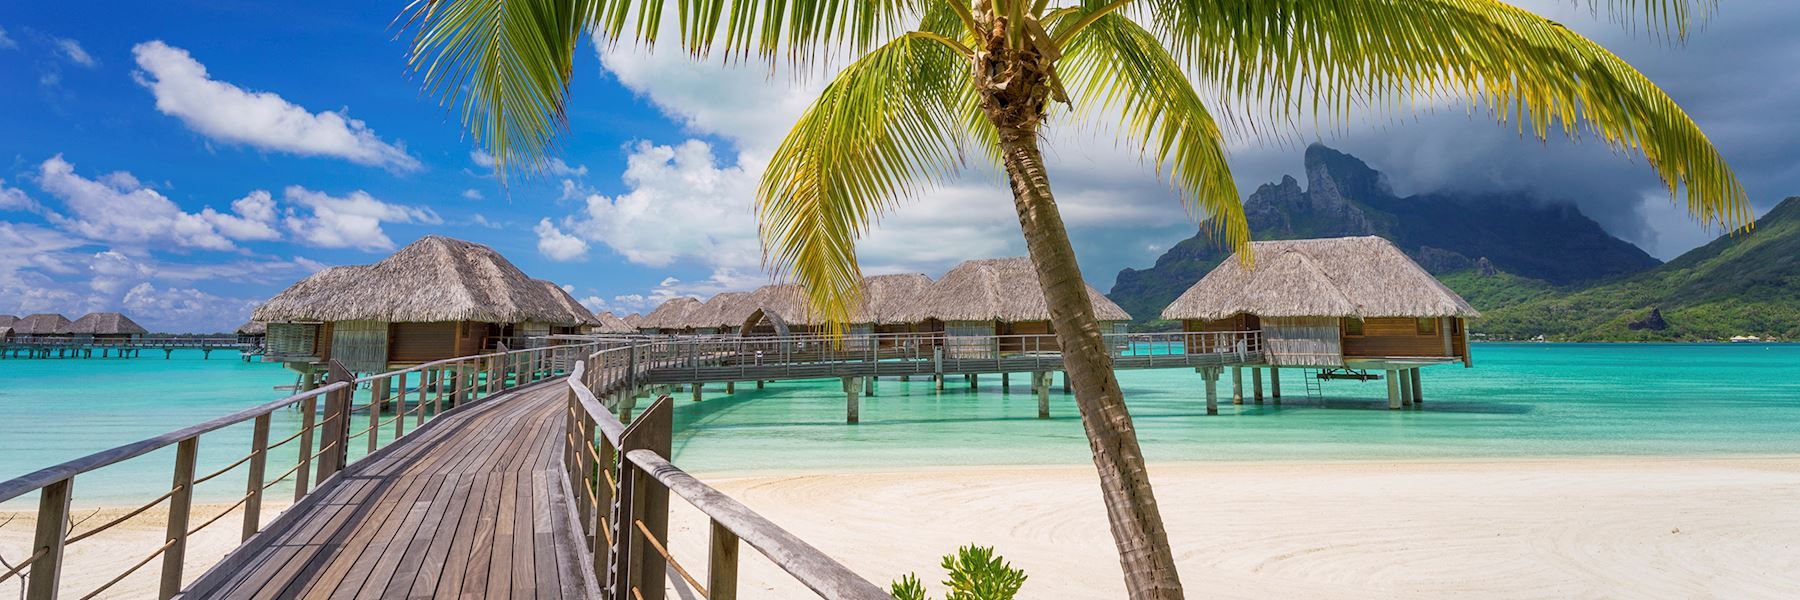 French Polynesia trip ideas